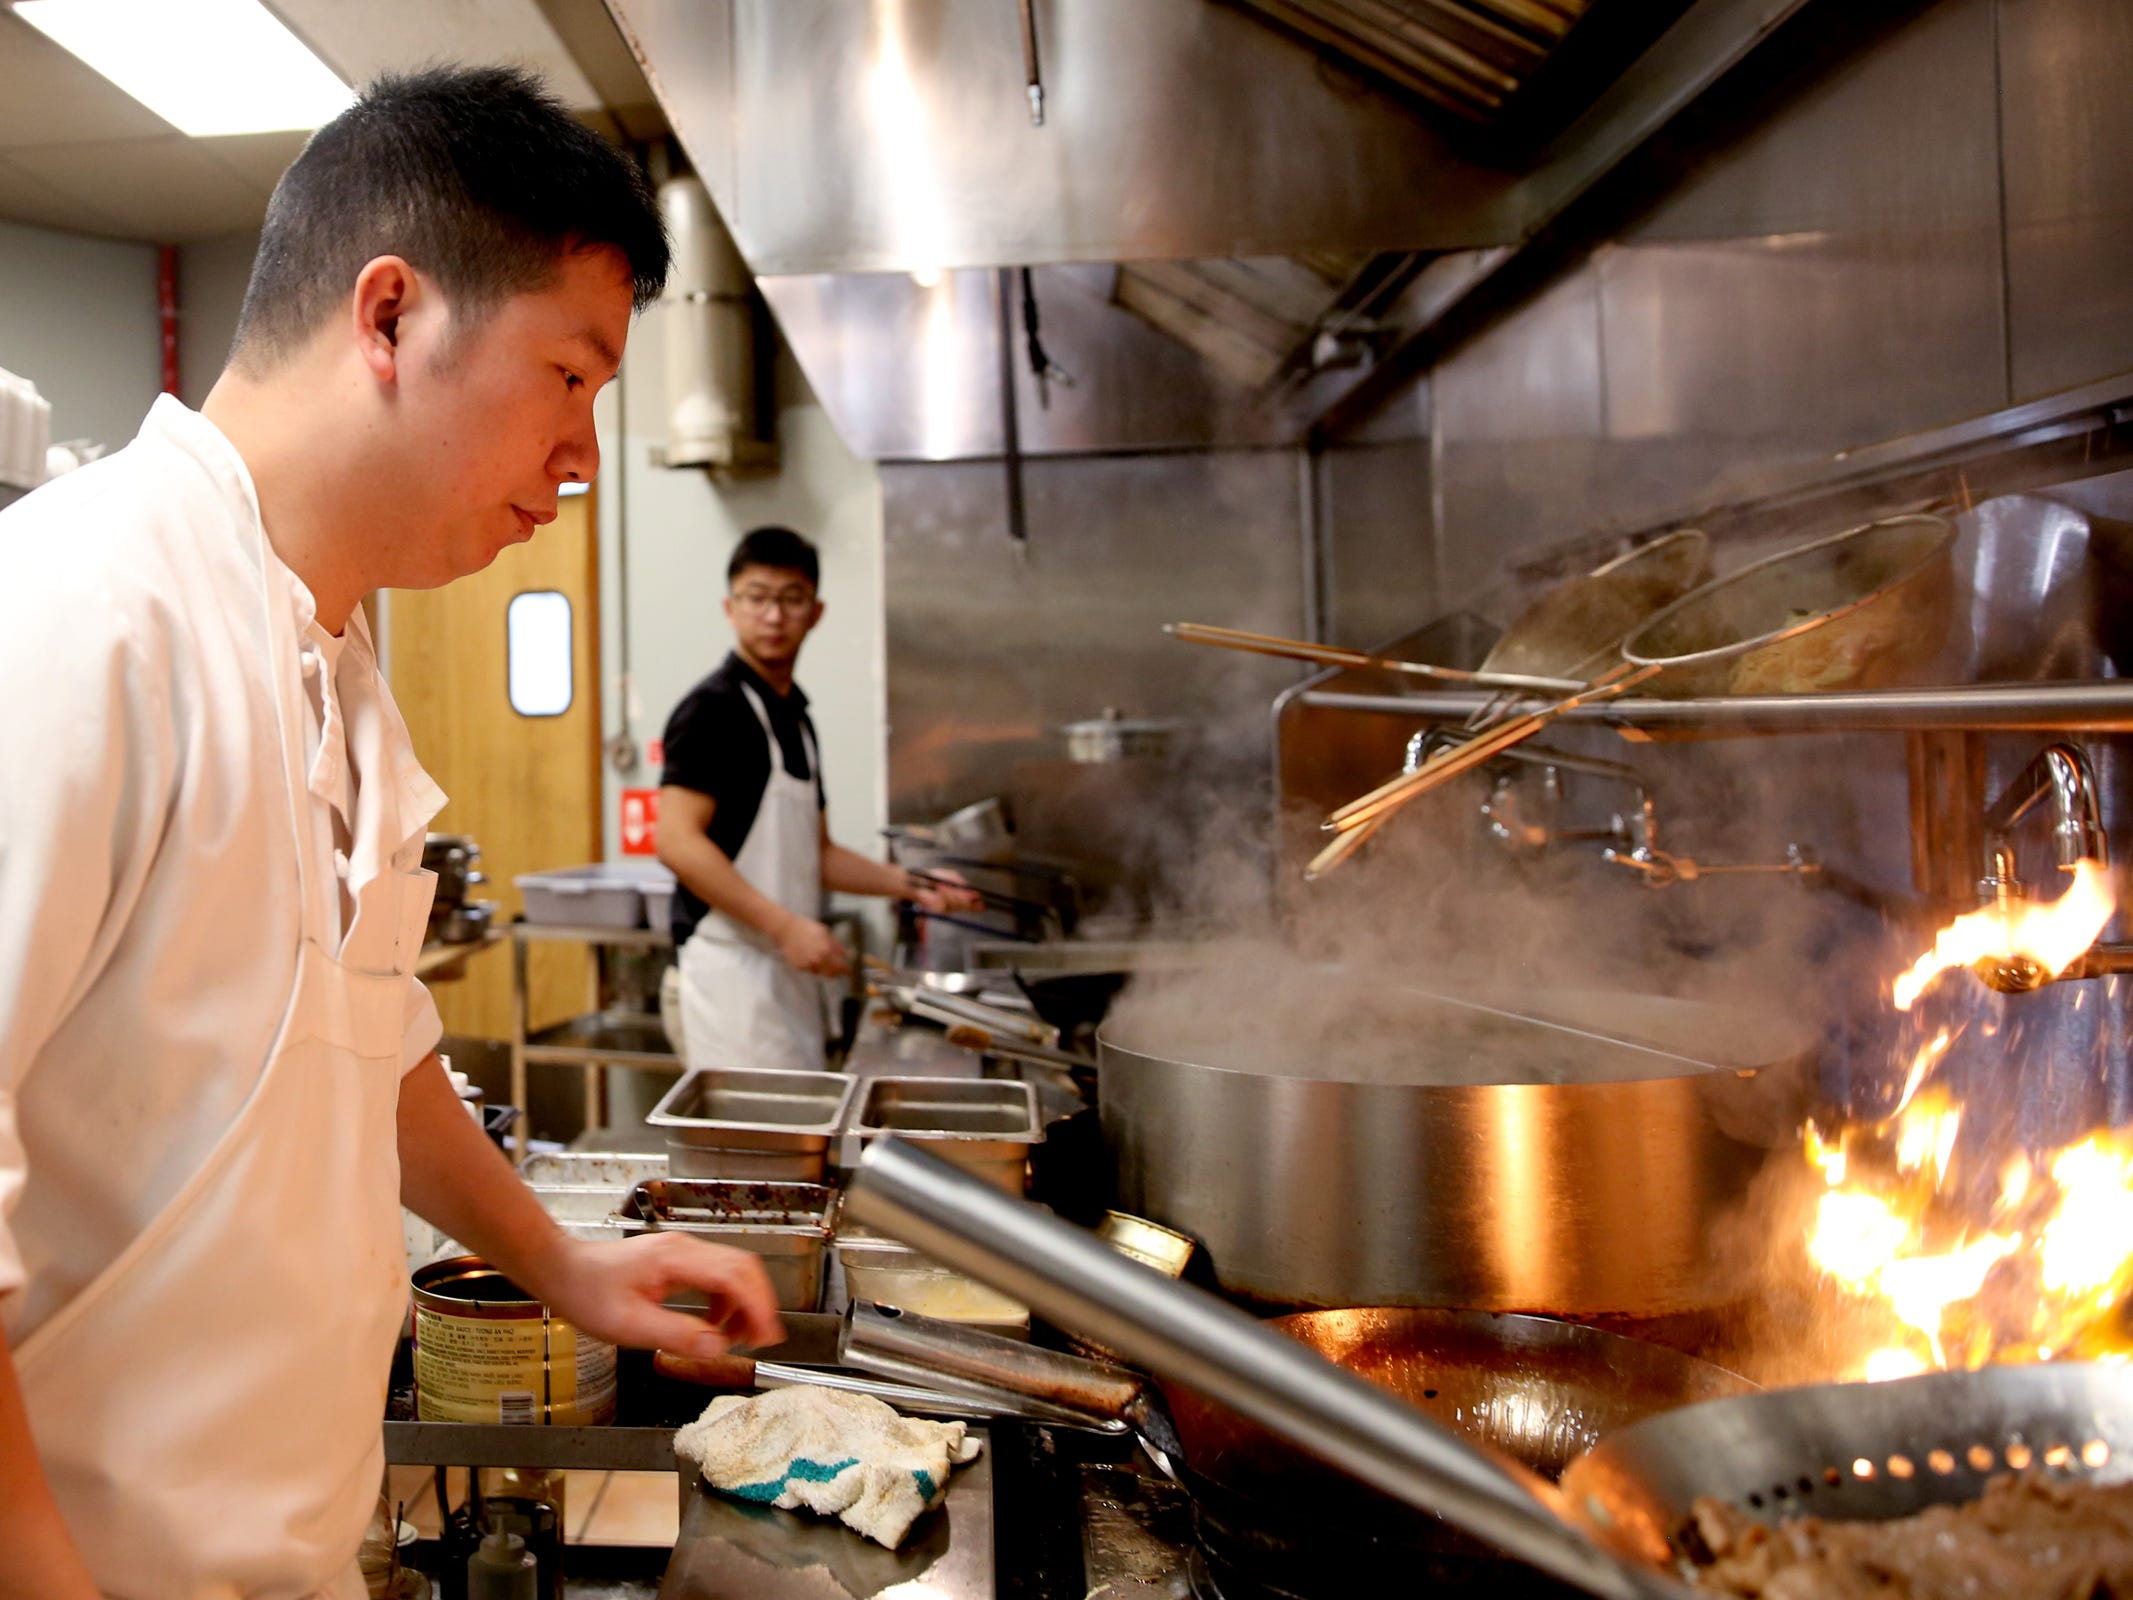 Owner Michael Chen prepares meals at Chen's Family Dish in Salem on Thursday, Jan. 31, 2019.